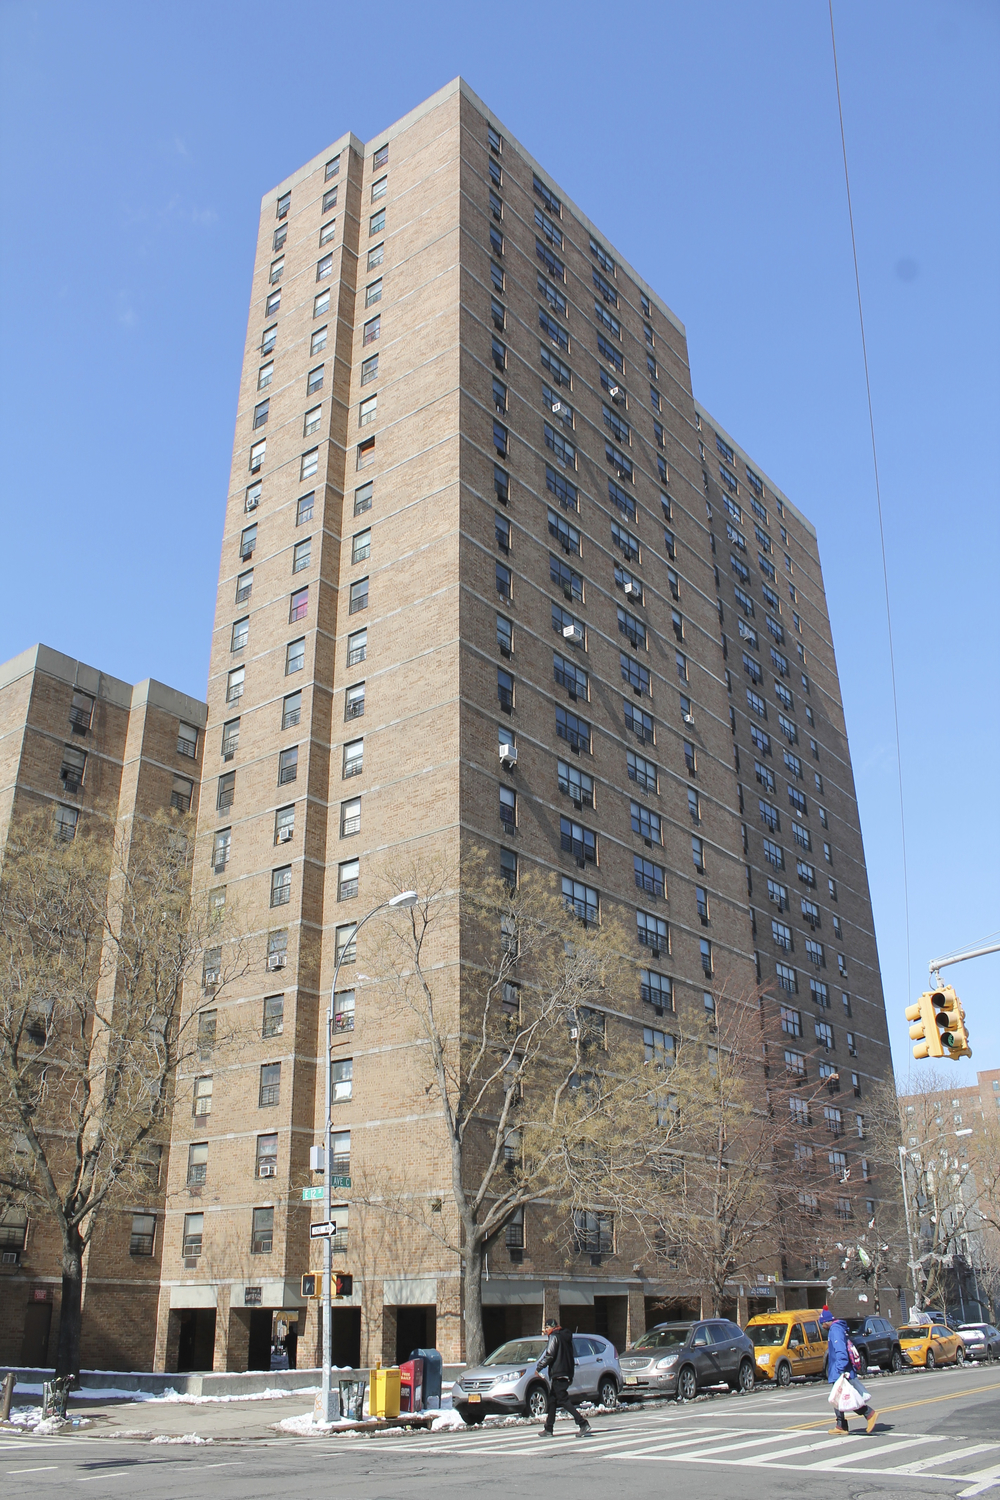 205 Avenue C in Manhattan was one building in a portfolio of project-based, Section 8 buildings NYCHA claimed it was forced to sell in 2014, because it could no longer afford to make capital repairs. However, an investigation by Progress Queens showed that some buildings in the portfolio, particularly in Brooklyn, received substantial repairs before the cash-strapped housing authority sold the buildings in a backroom deal to a consortium of developers with close political ties to the de Blasio administration.  Source :  Louis Flores